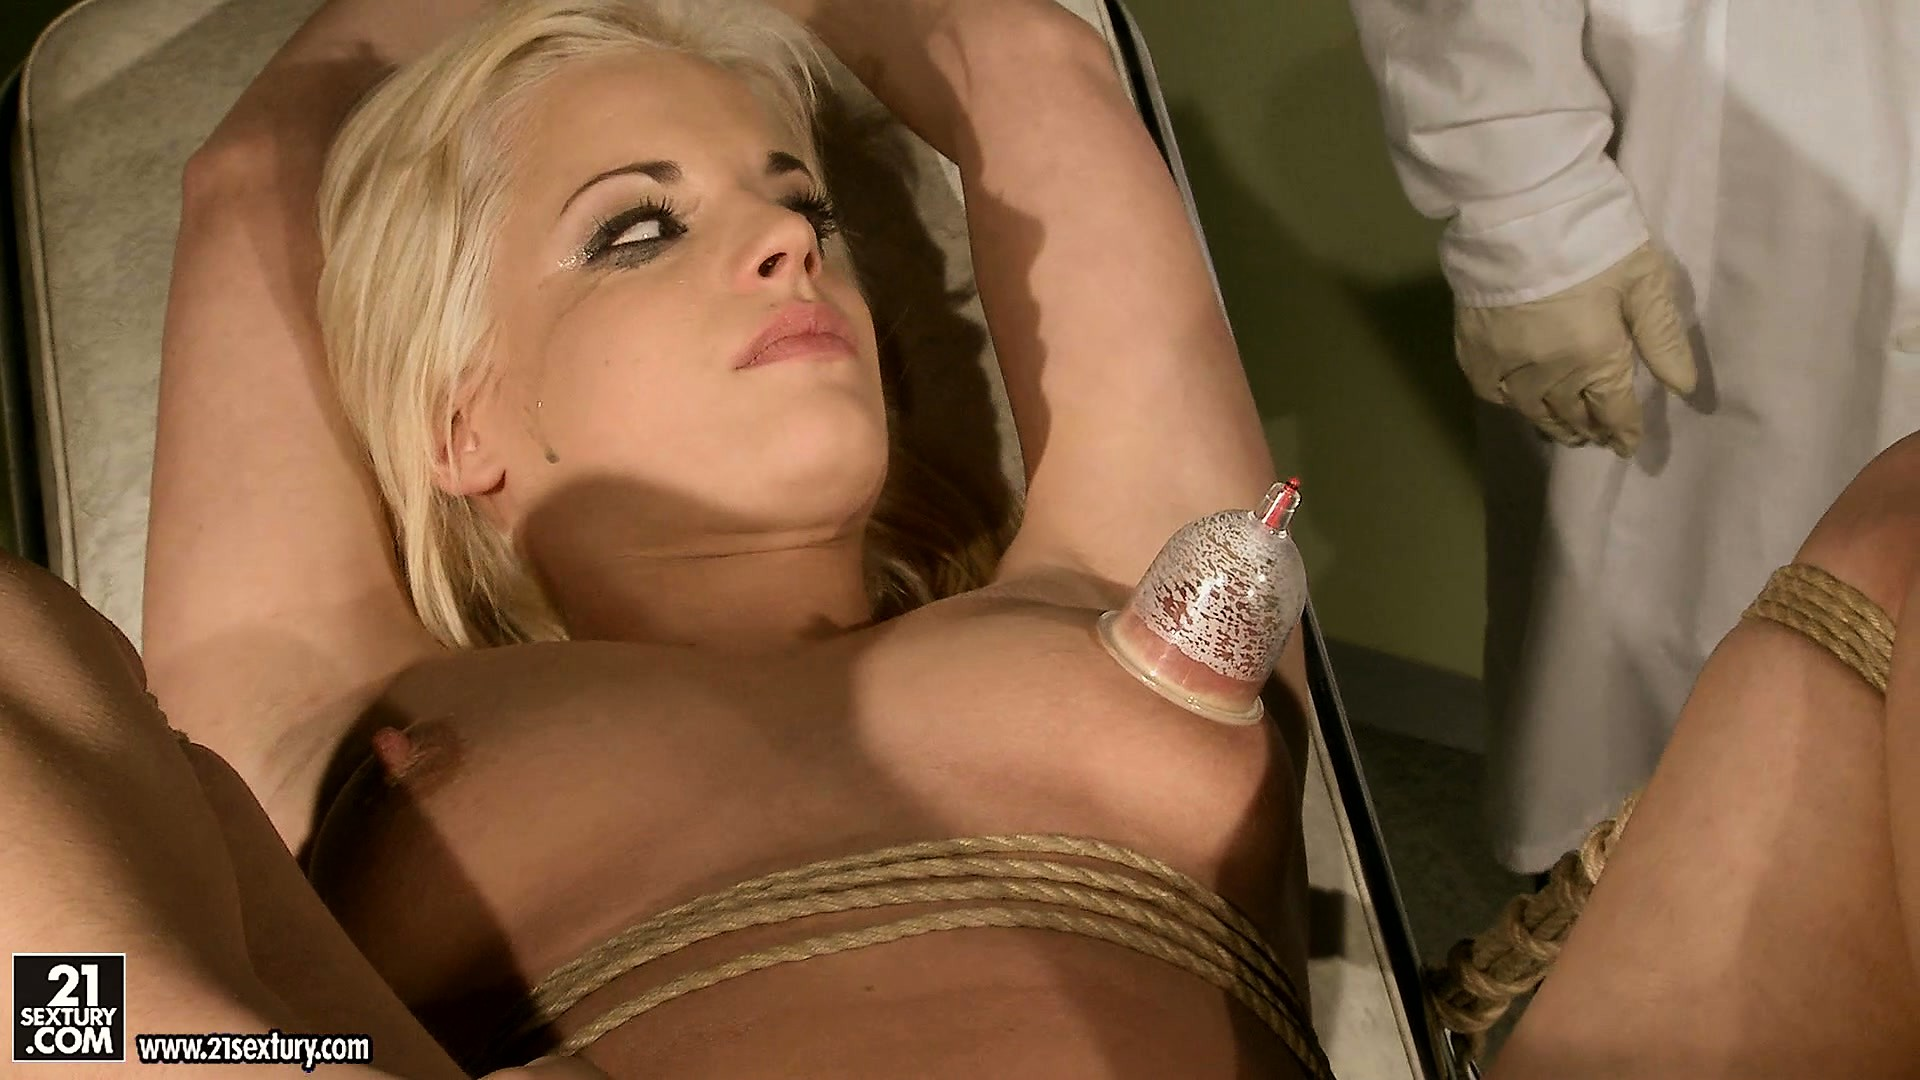 Porn Tube of On The Operating Table, This Evil Doctor Tortures A Blonde Babe With Clamps And Pumps